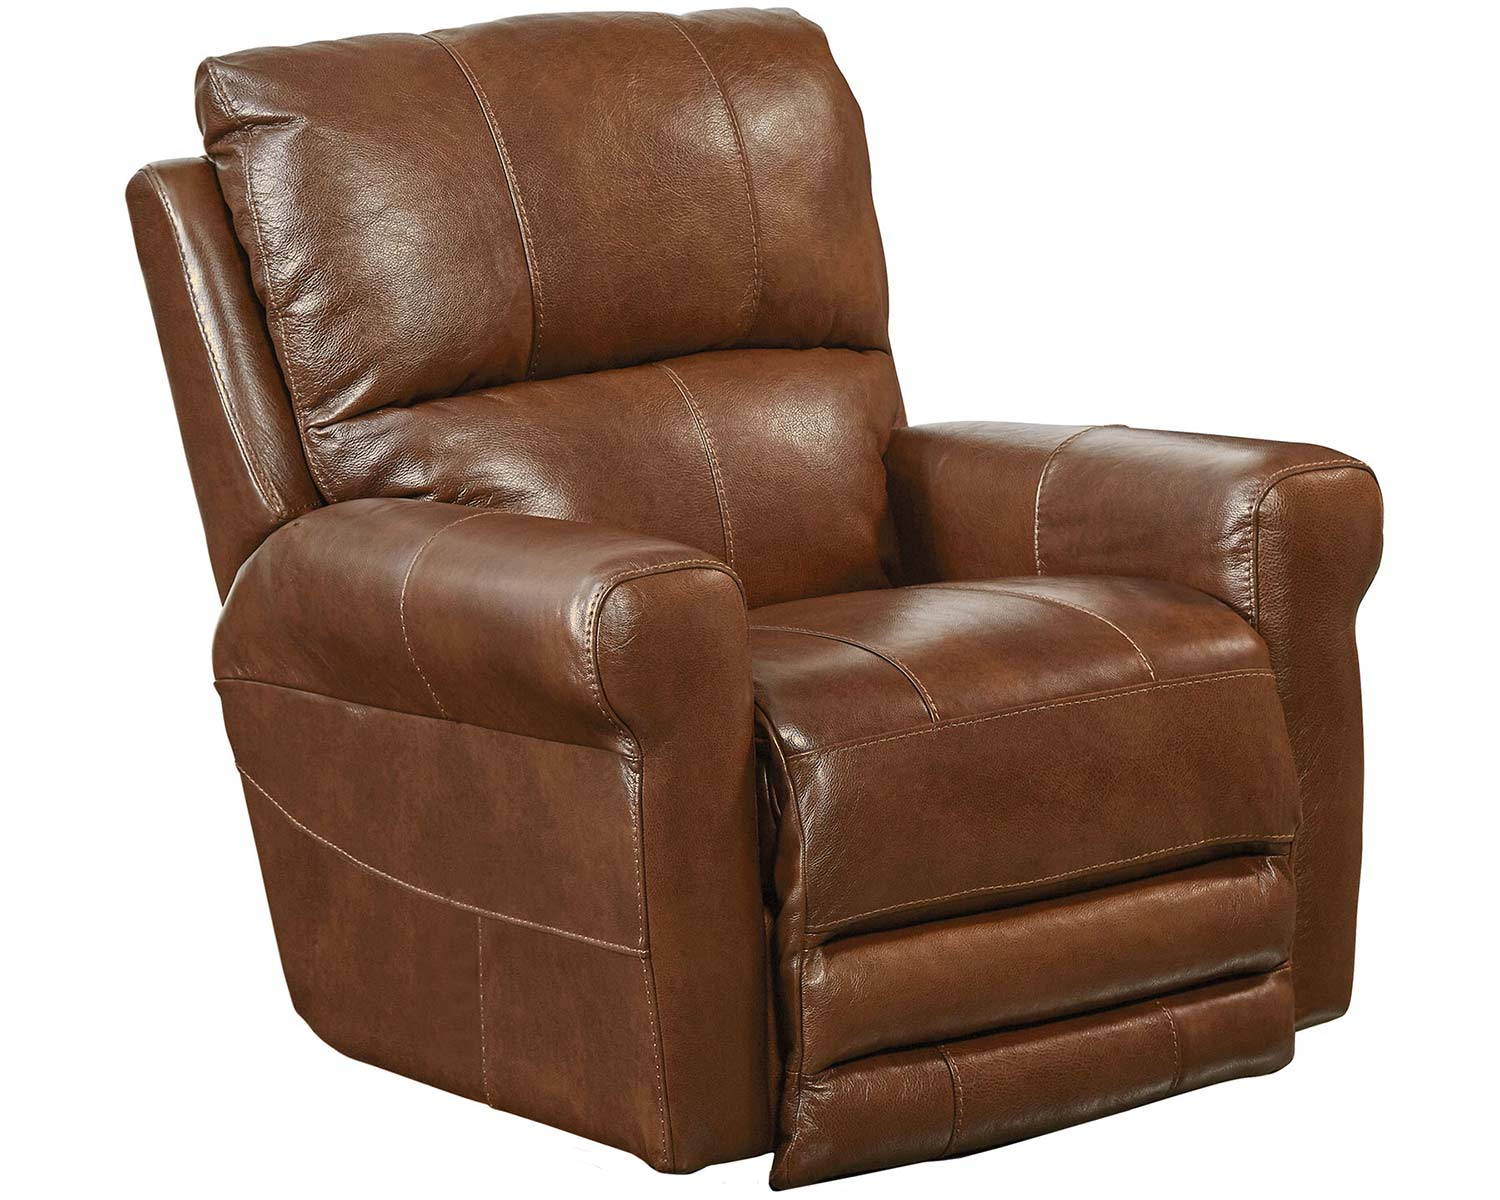 CatNapper Hoffner Leather Recliner Chair - Chestnut